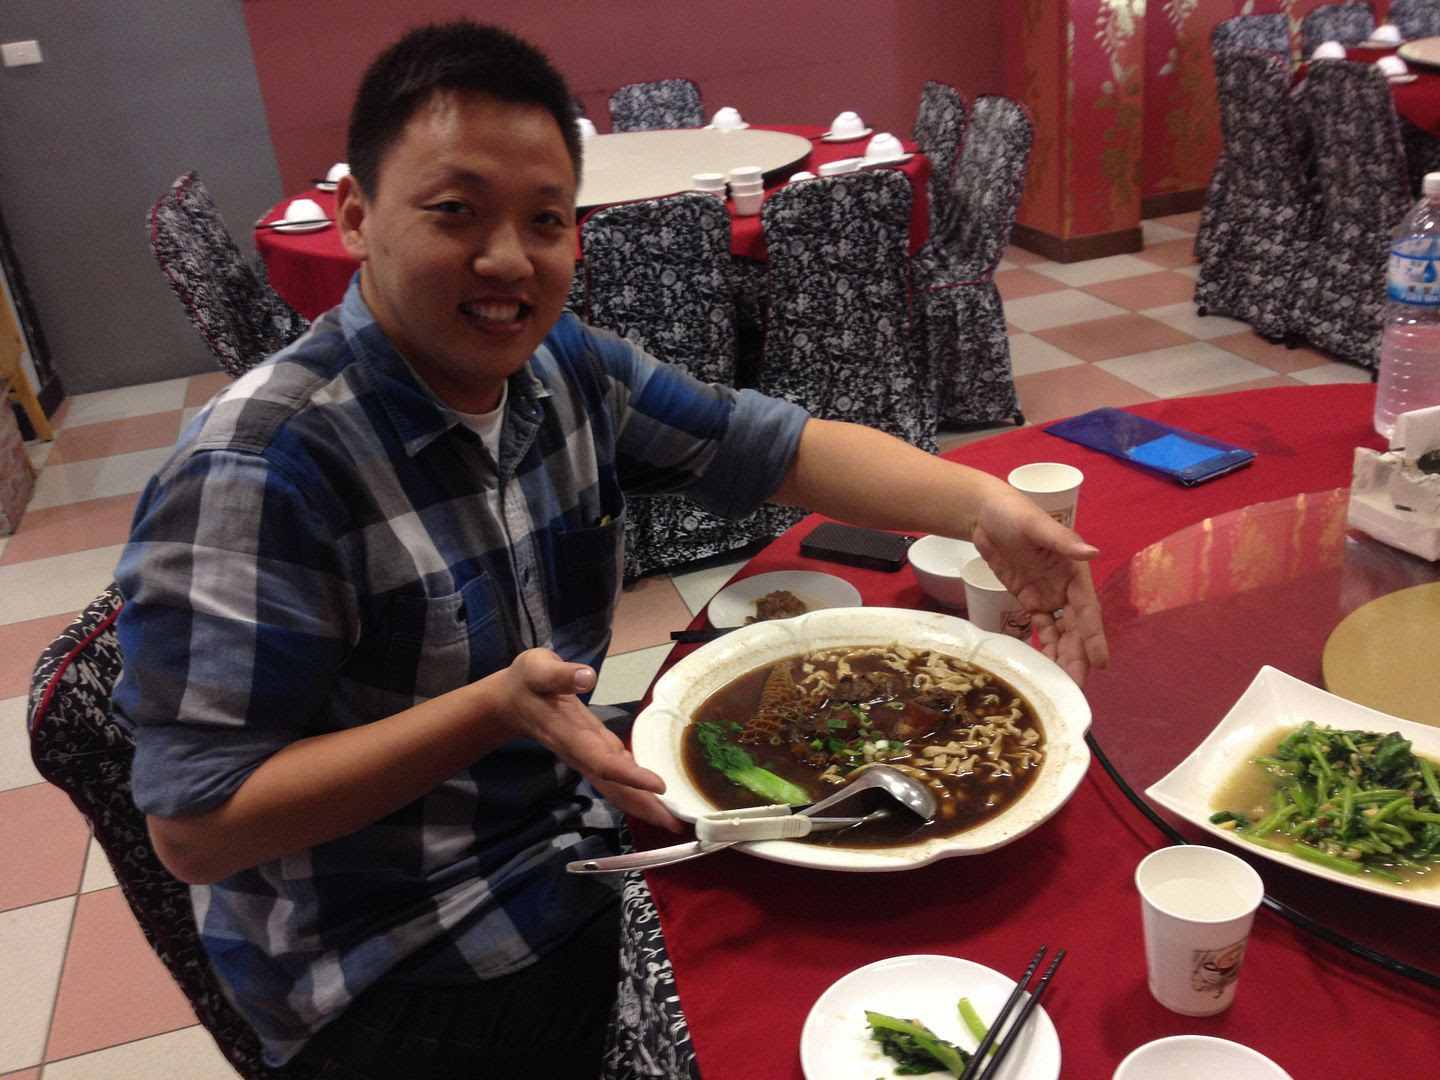 Beef Noodle Meal for One in Kinmen photo 2014-01-03124642_zps897ec60e.jpg